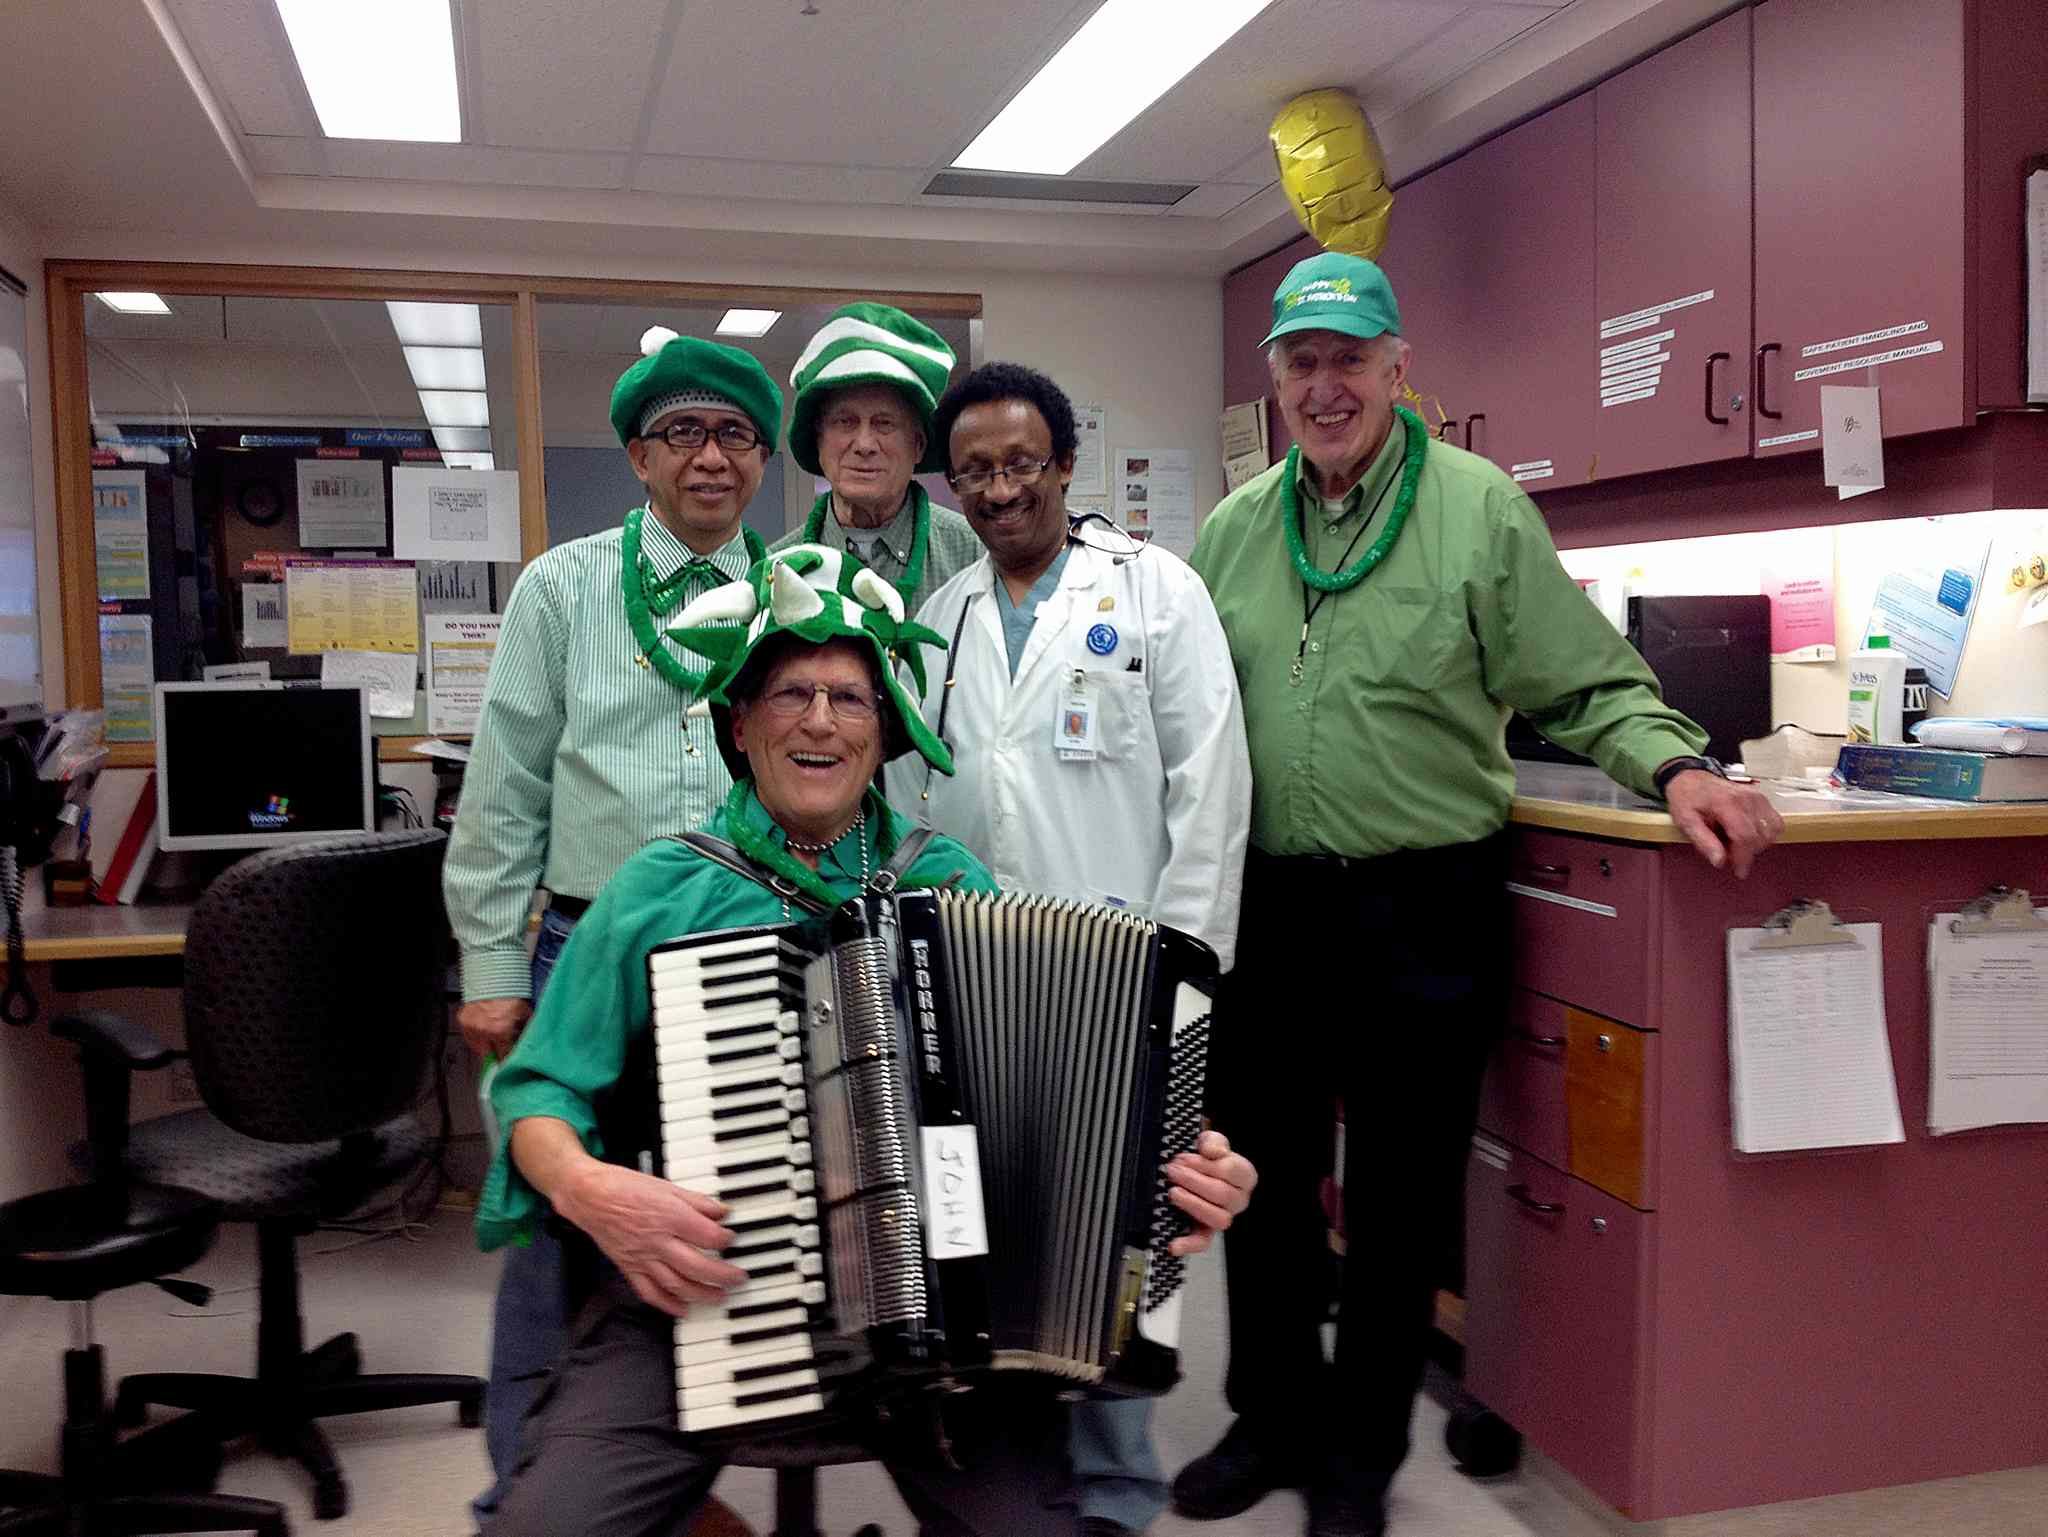 A group of local seniors from Blessed Sacrament Parish brought some St. Patrick's Day joy by playing some music for those at Concordia Hospital on March 15. Clockwise from left, Pedro Gregorio, Mel Belluk, Andrew Ilchena, and John Kessling are shown with a doctor at the hospital.